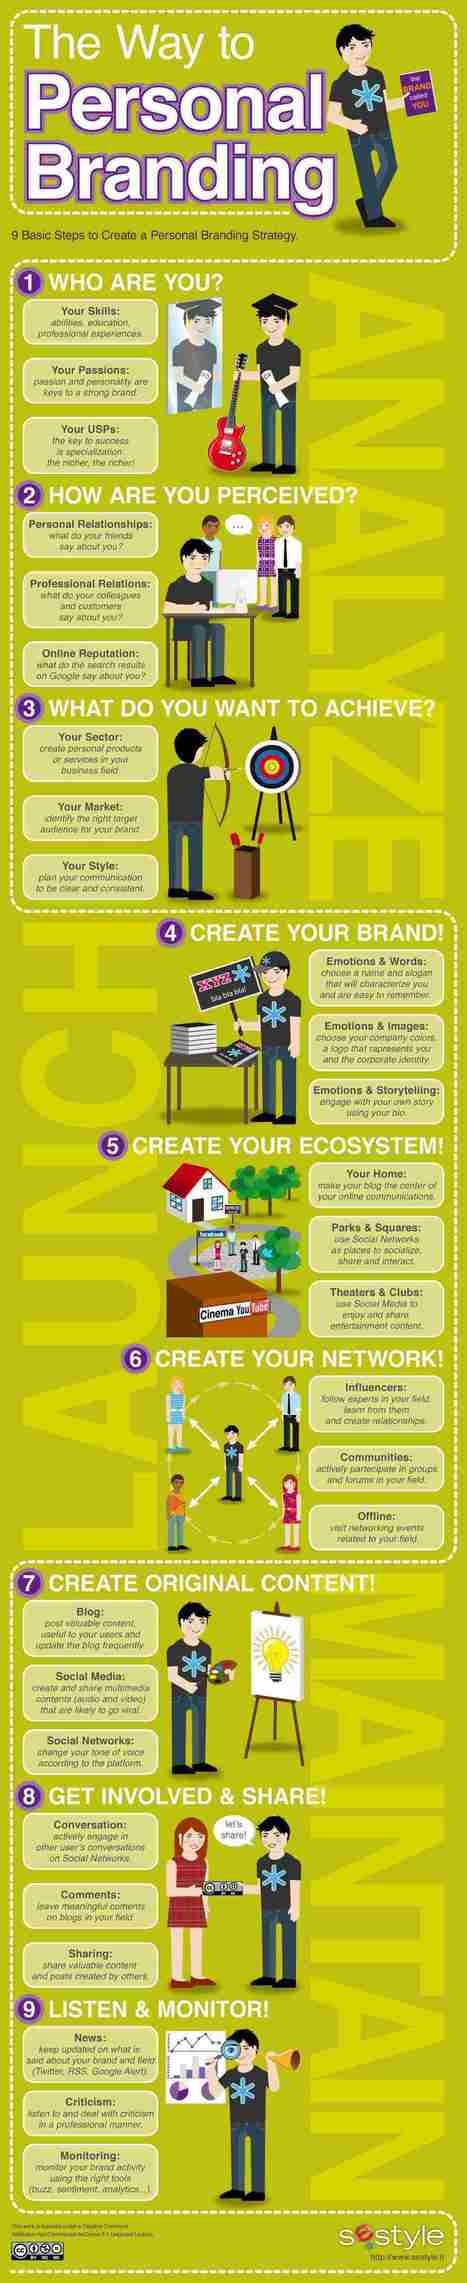 A Nine-Step Path to Personal Branding [Infographic] - Profs | Imagología | Scoop.it